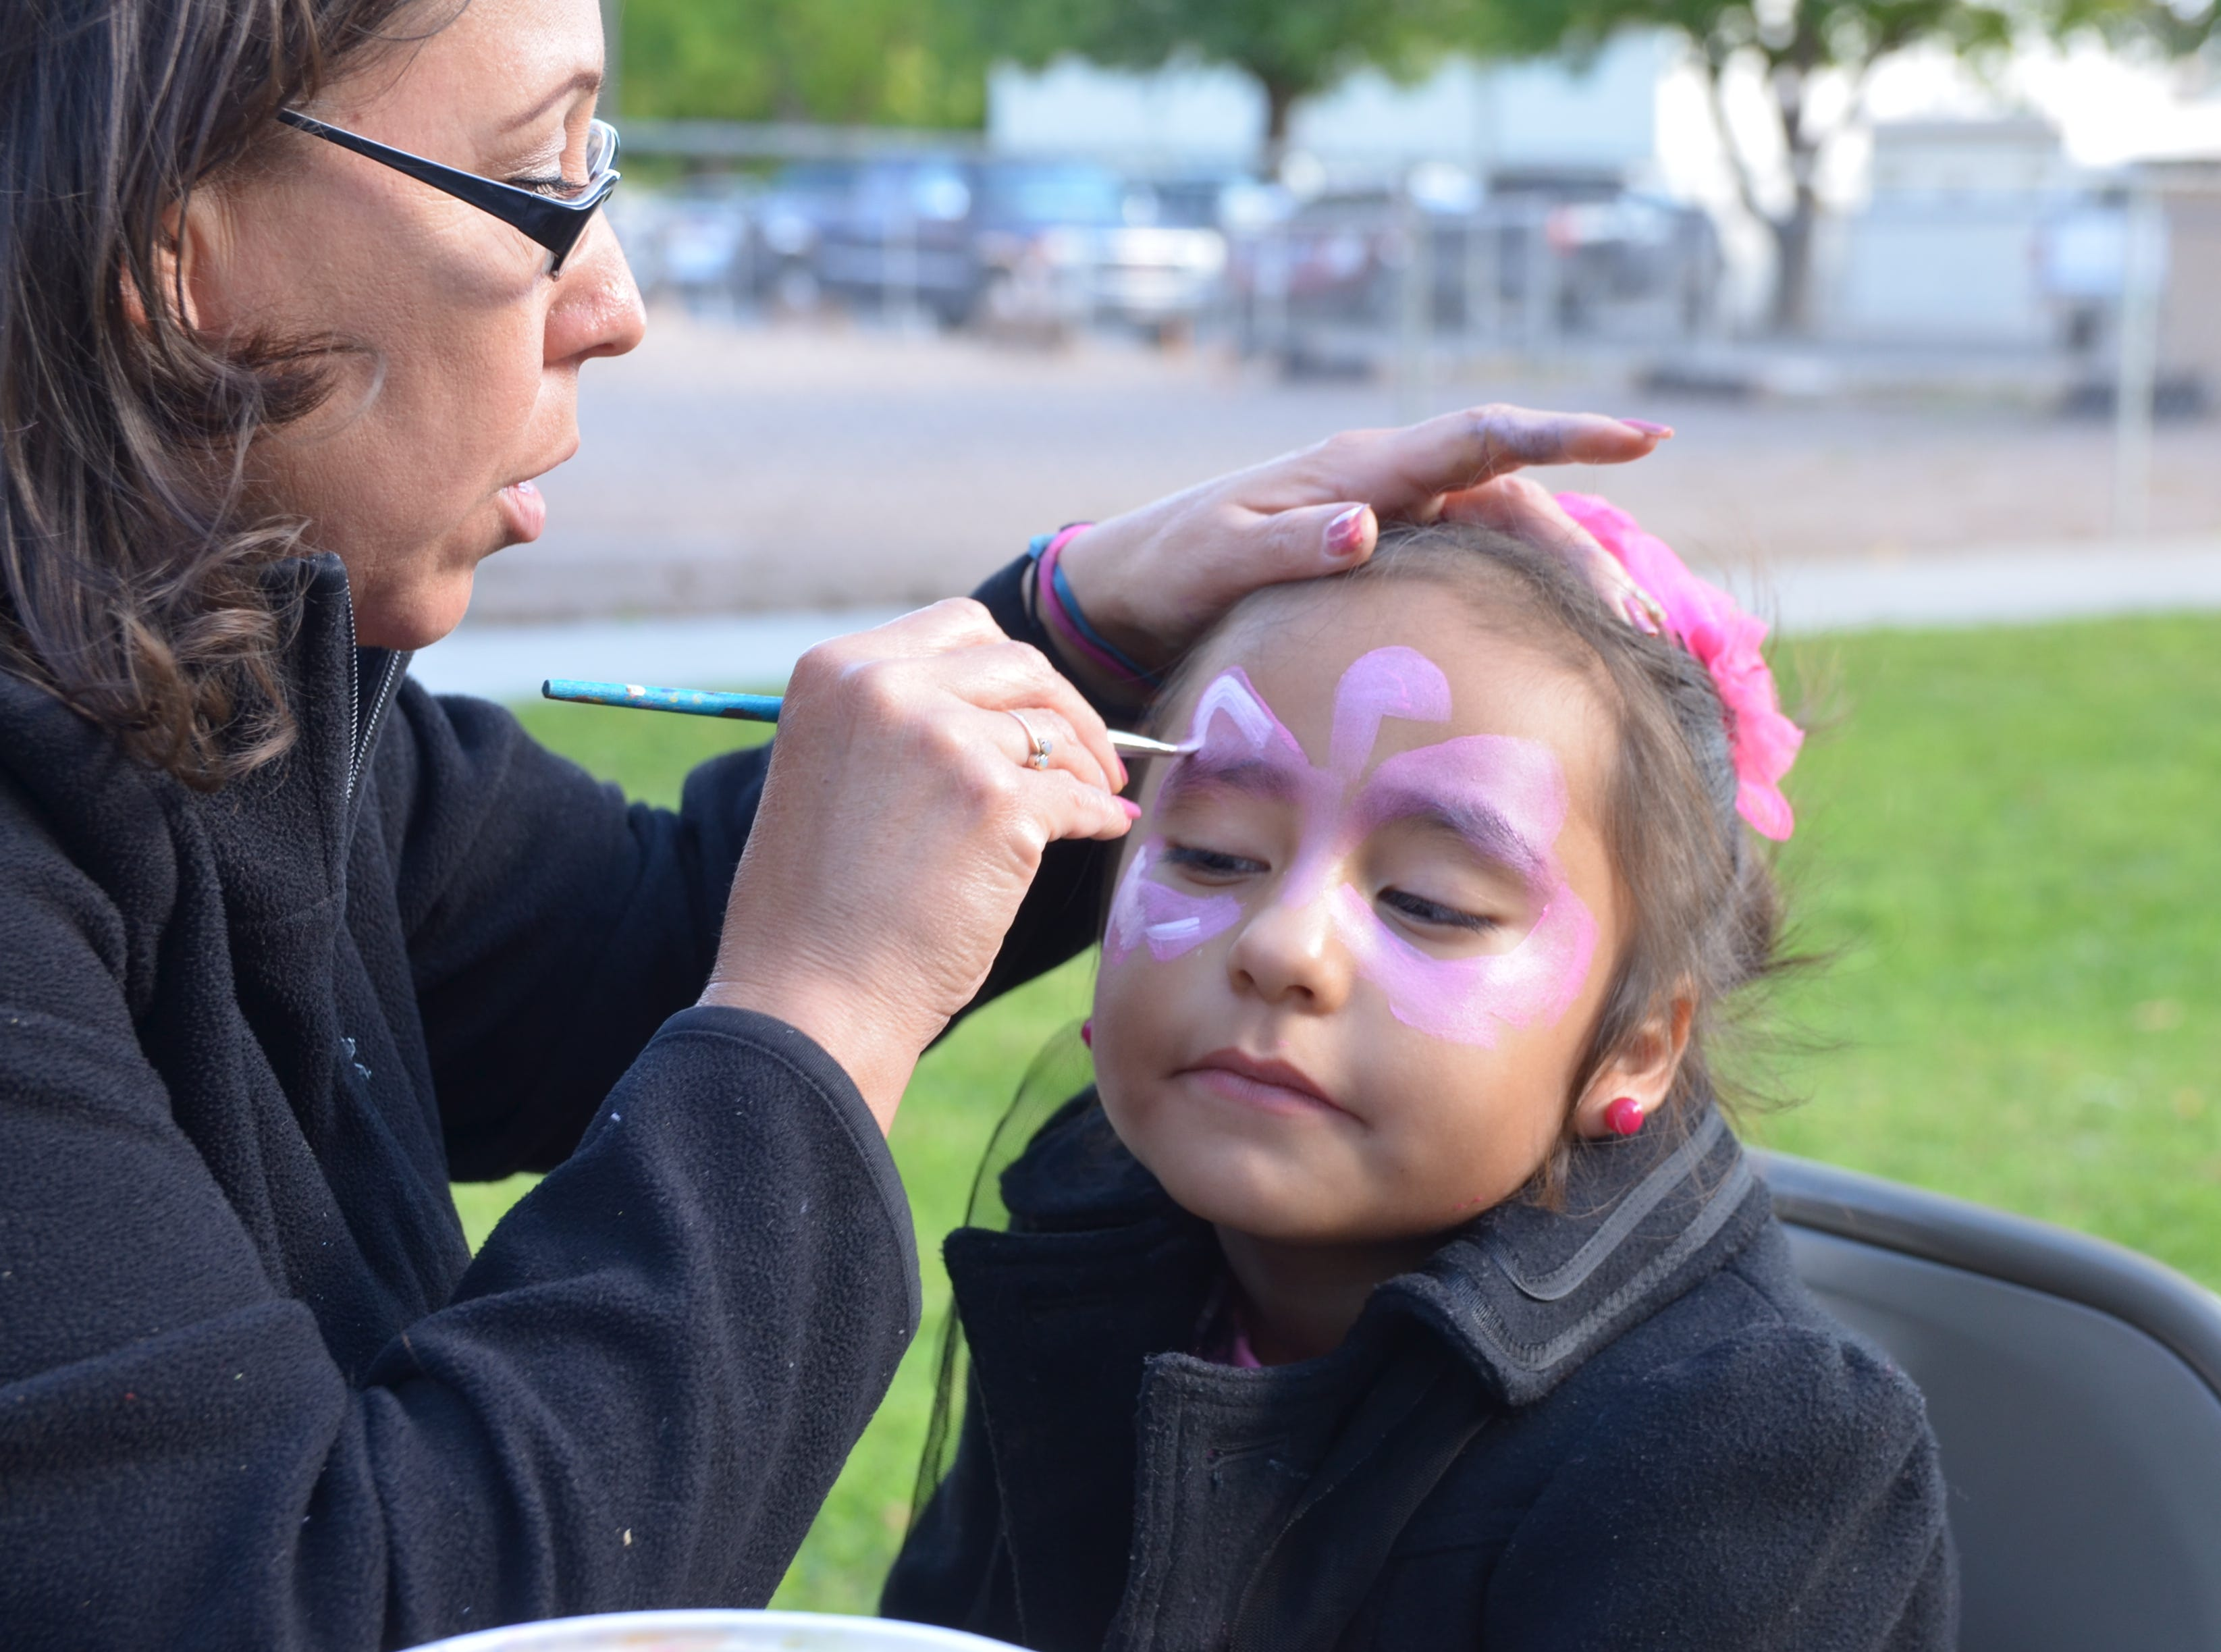 Ruby Luera, 6, got her face painted as a flamingo during the 90th annual Klobase Festival at Courthouse Park on Sunday.